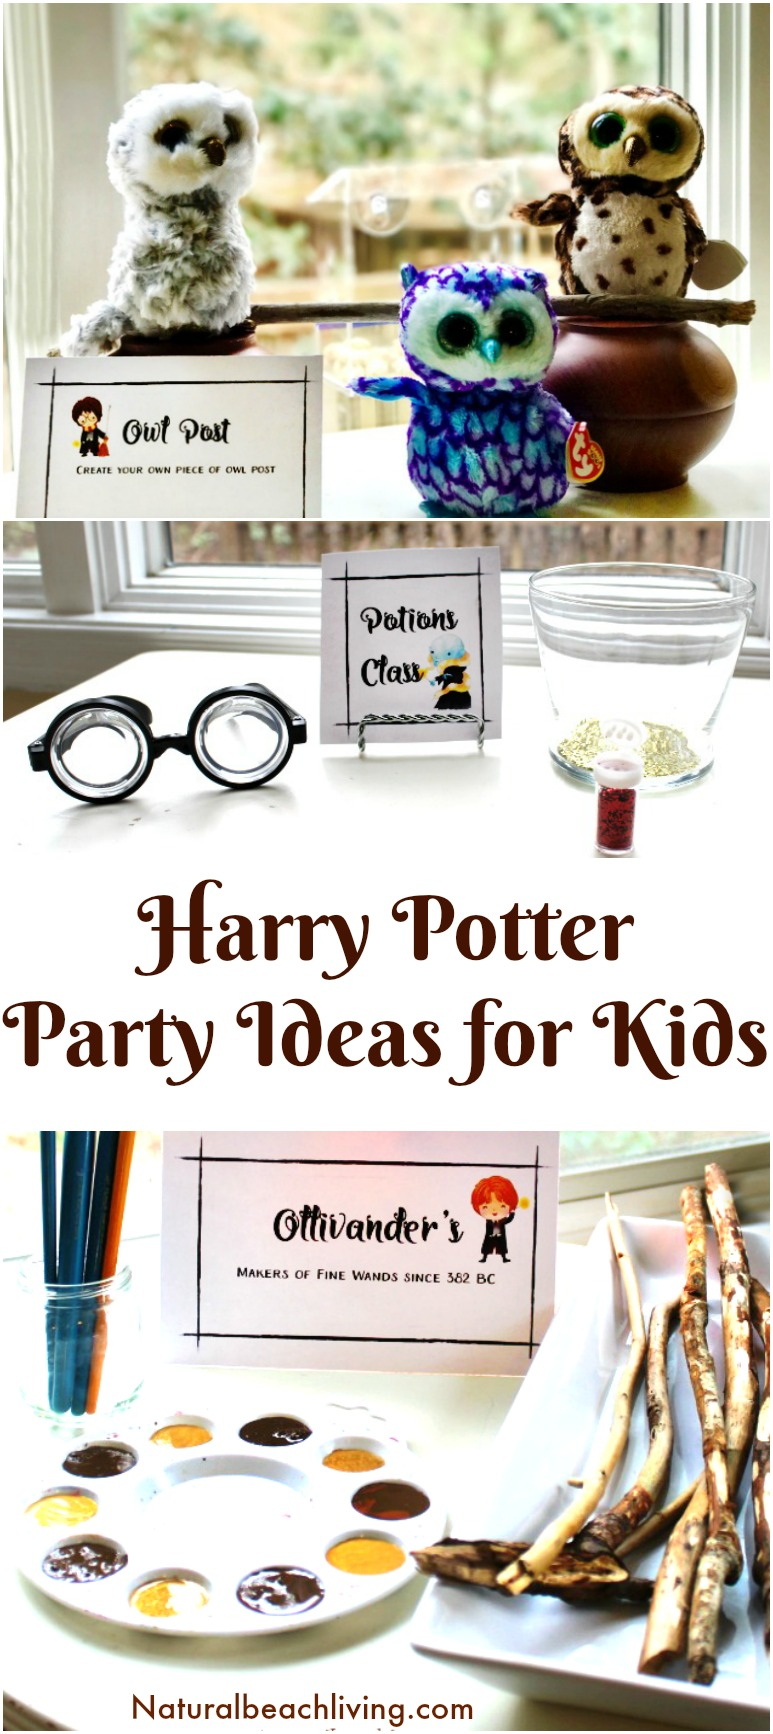 20+ Harry Potter Recipes Fans Love to Make, You don't need a holiday or party to make a delicious recipe inspired by the magical world of Harry Potter all you need is a Harry Potter fan and your imagination. The Best Harry Potter Food Recipes and Harry Potter Party Ideas